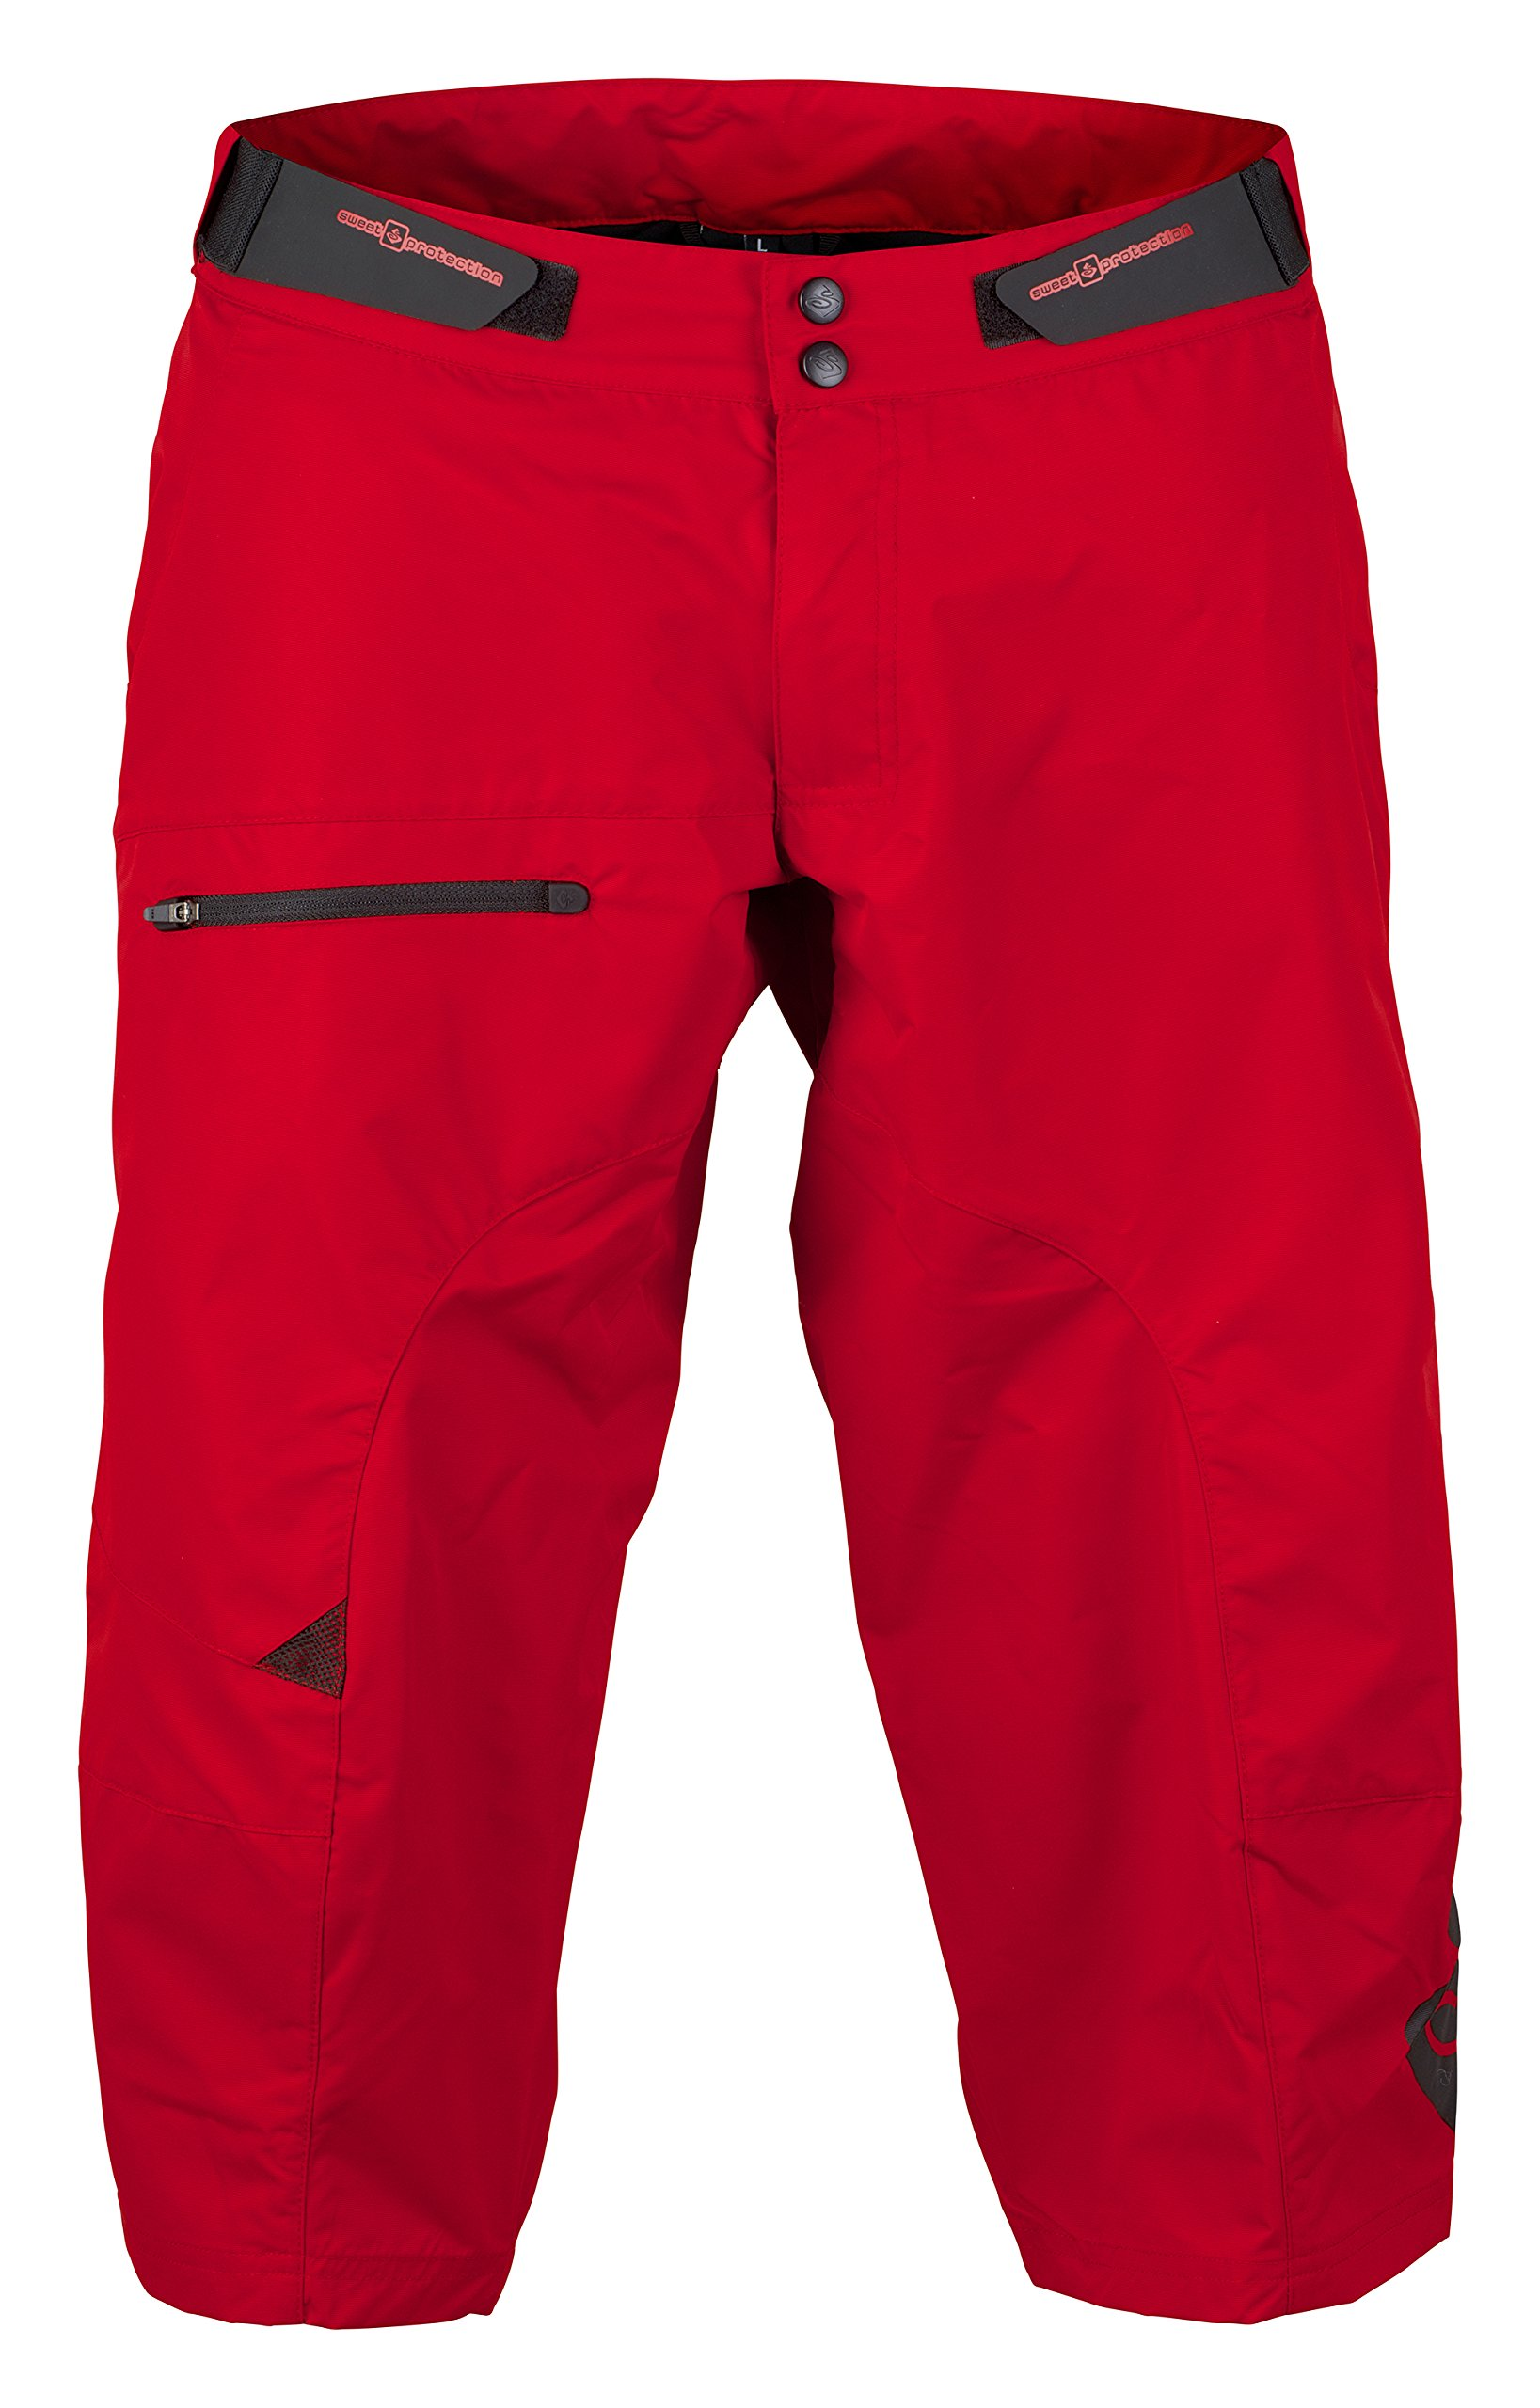 Sweet Protection Shambala Paddle Shorts, Scorch Red, X-Large by Sweet Protection